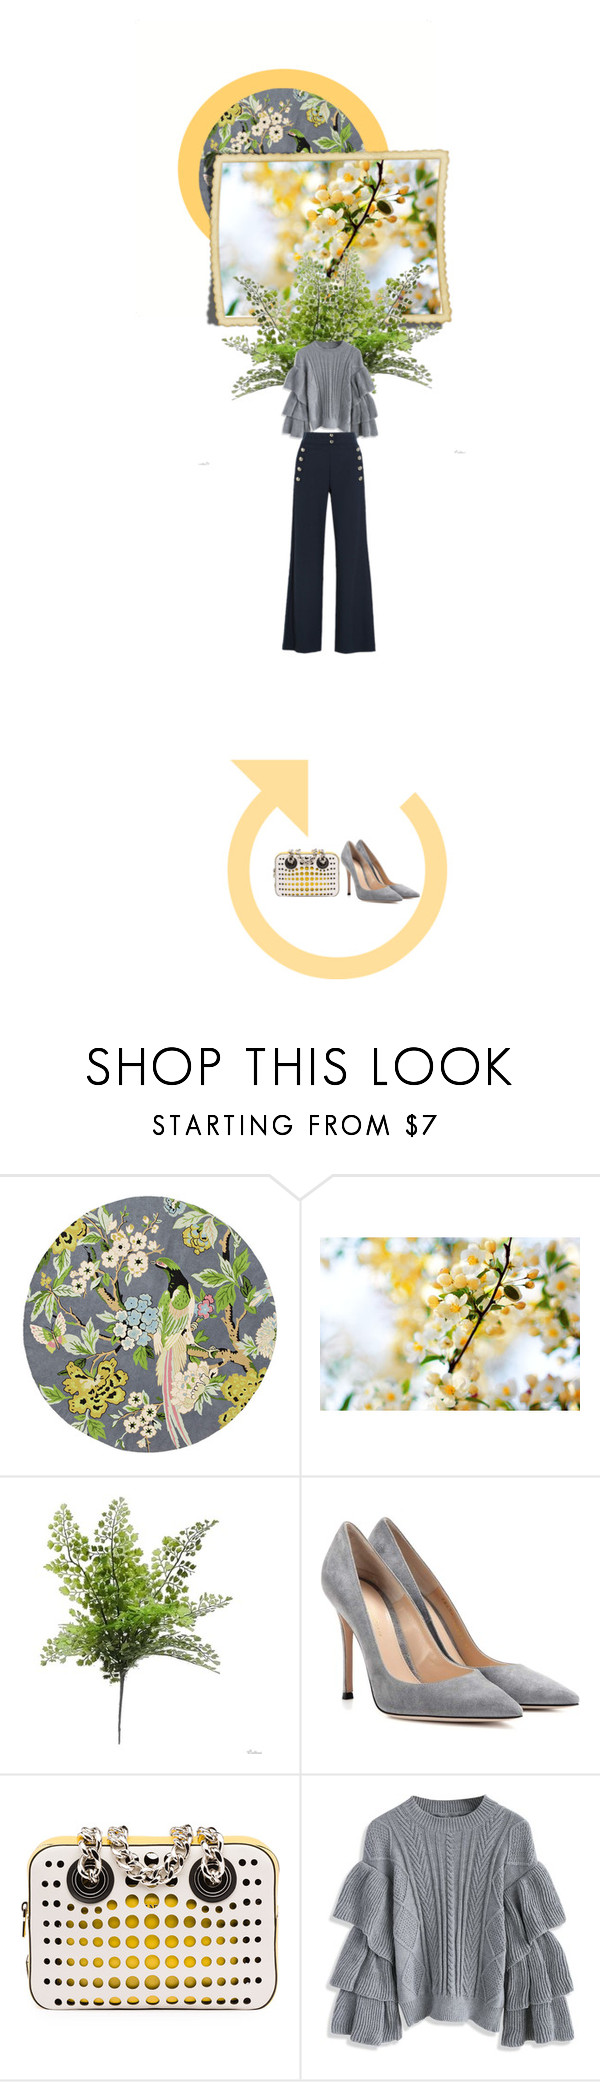 """Sin título #173"" by ladymarian ❤ liked on Polyvore featuring Anthropologie, Hostess, Gianvito Rossi, Prada, Chicwish and Chloé"